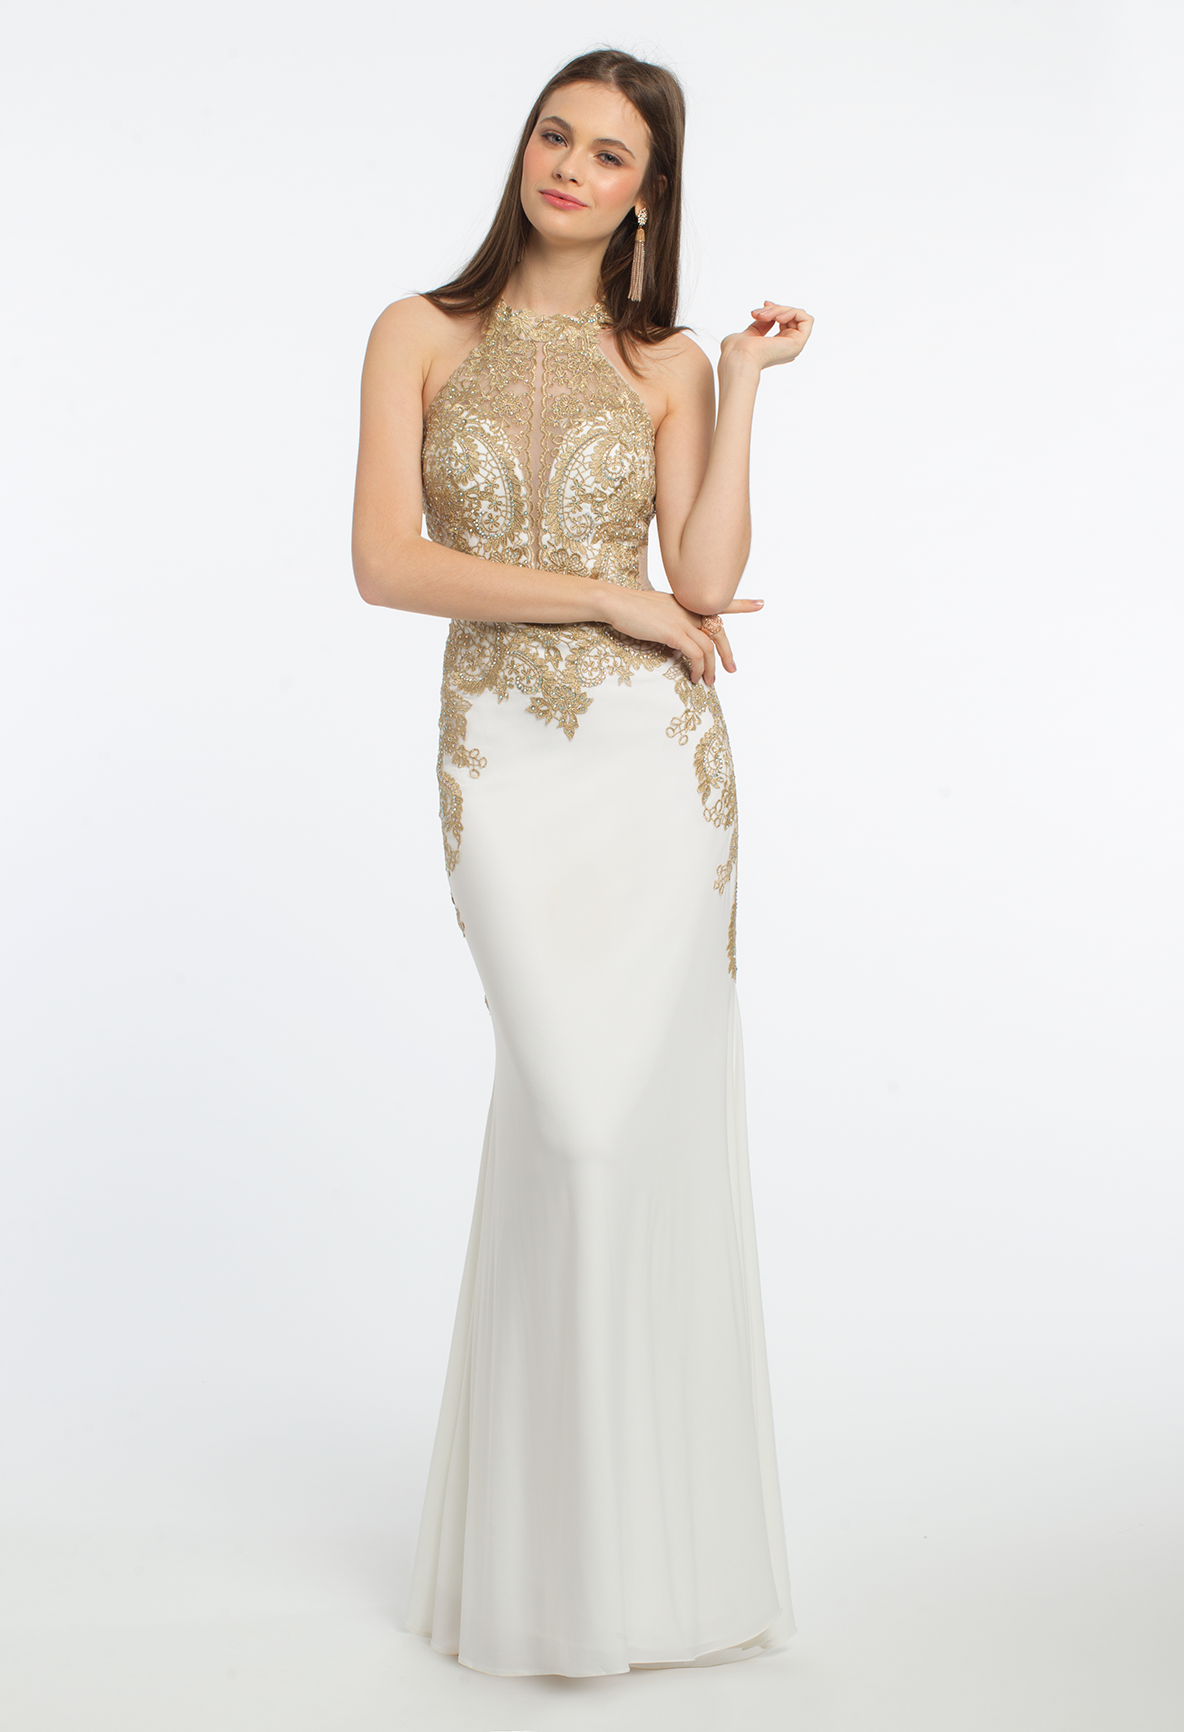 Go for a royal finish with this beautiful evening gown with its